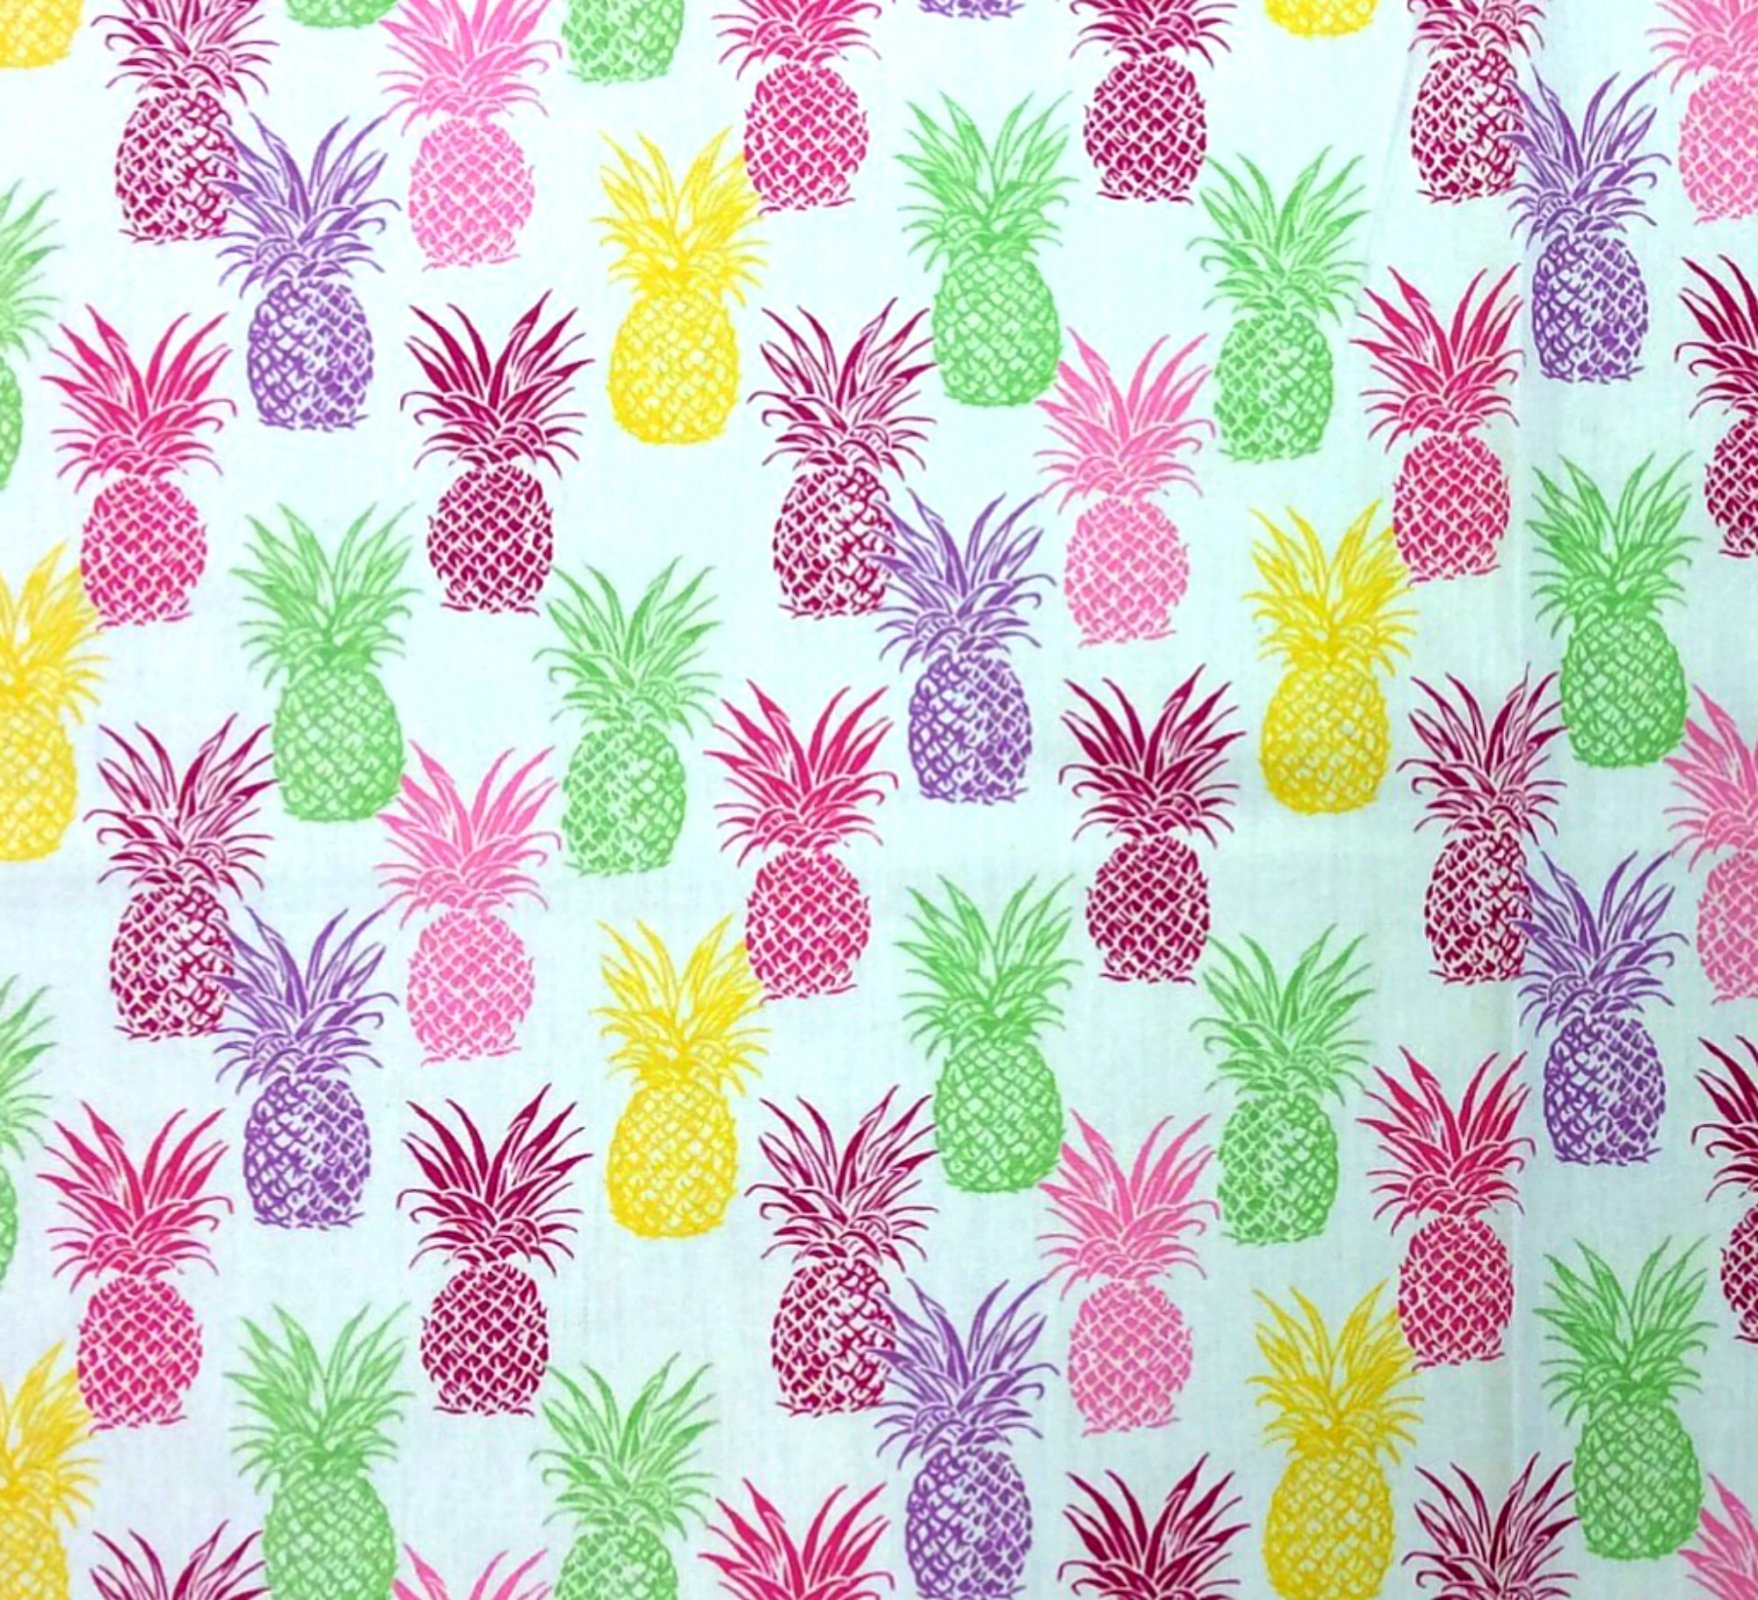 FAT QUARTER! Pineapple Rainbow Tropical Fruit Cotton Quilt Fabric RPFTP036